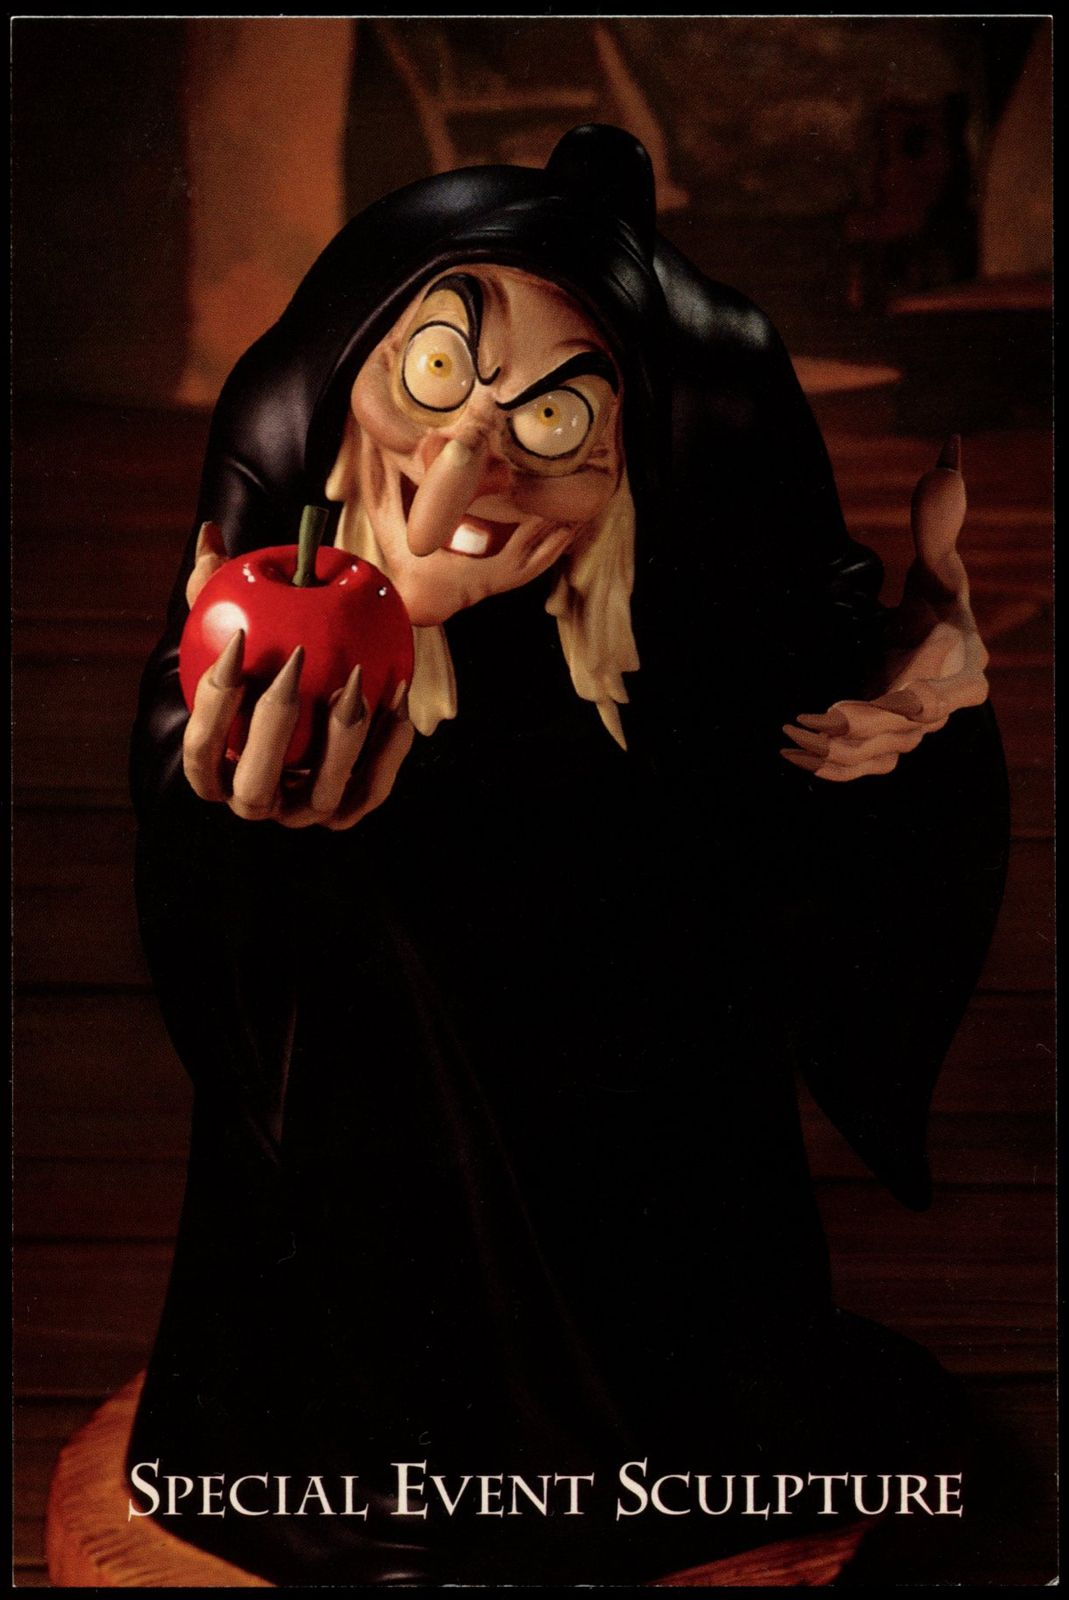 """WDCC Witch Postcard/Button Special event postcard and rectangular button from the 1995 Walt Disney Classics Collection promotion of the figurine, Take The Apple, Dearie. Postcards were mailed out to collectors by Authorized Dealers or were included in the WDCC Sketches or Newsflash mailings. Card measures 6"""" x 4"""" with a description of the figurine on backside. The button was a Gift-with-Purchase item. Measures 3.5"""" x 2"""" and has the """"© Disney"""" mark printed on back. Postcard..."""